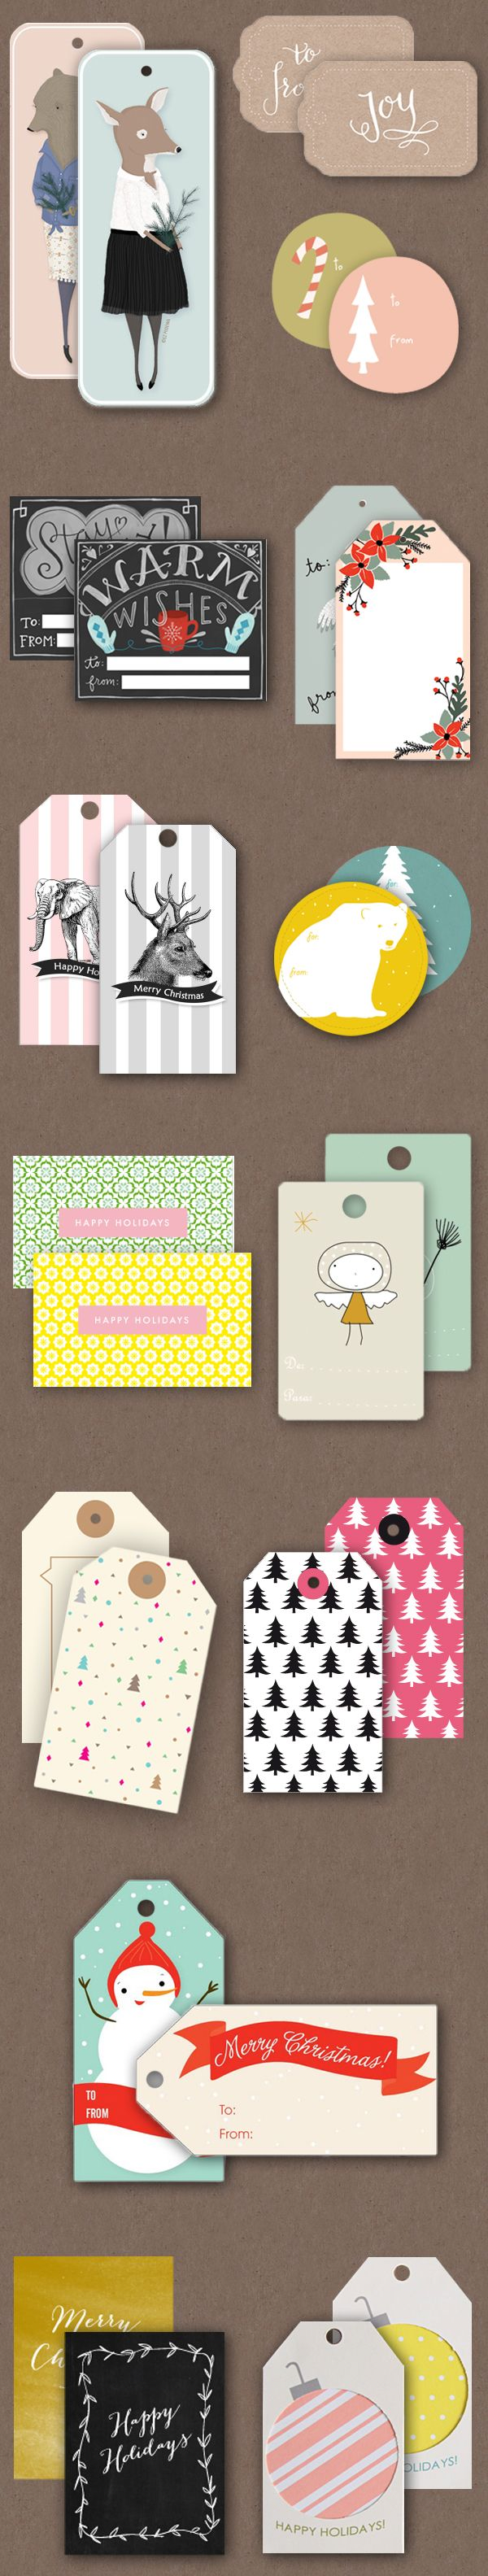 oh the lovely things .:. holiday roundup part two .:. free printable gift tags roundup